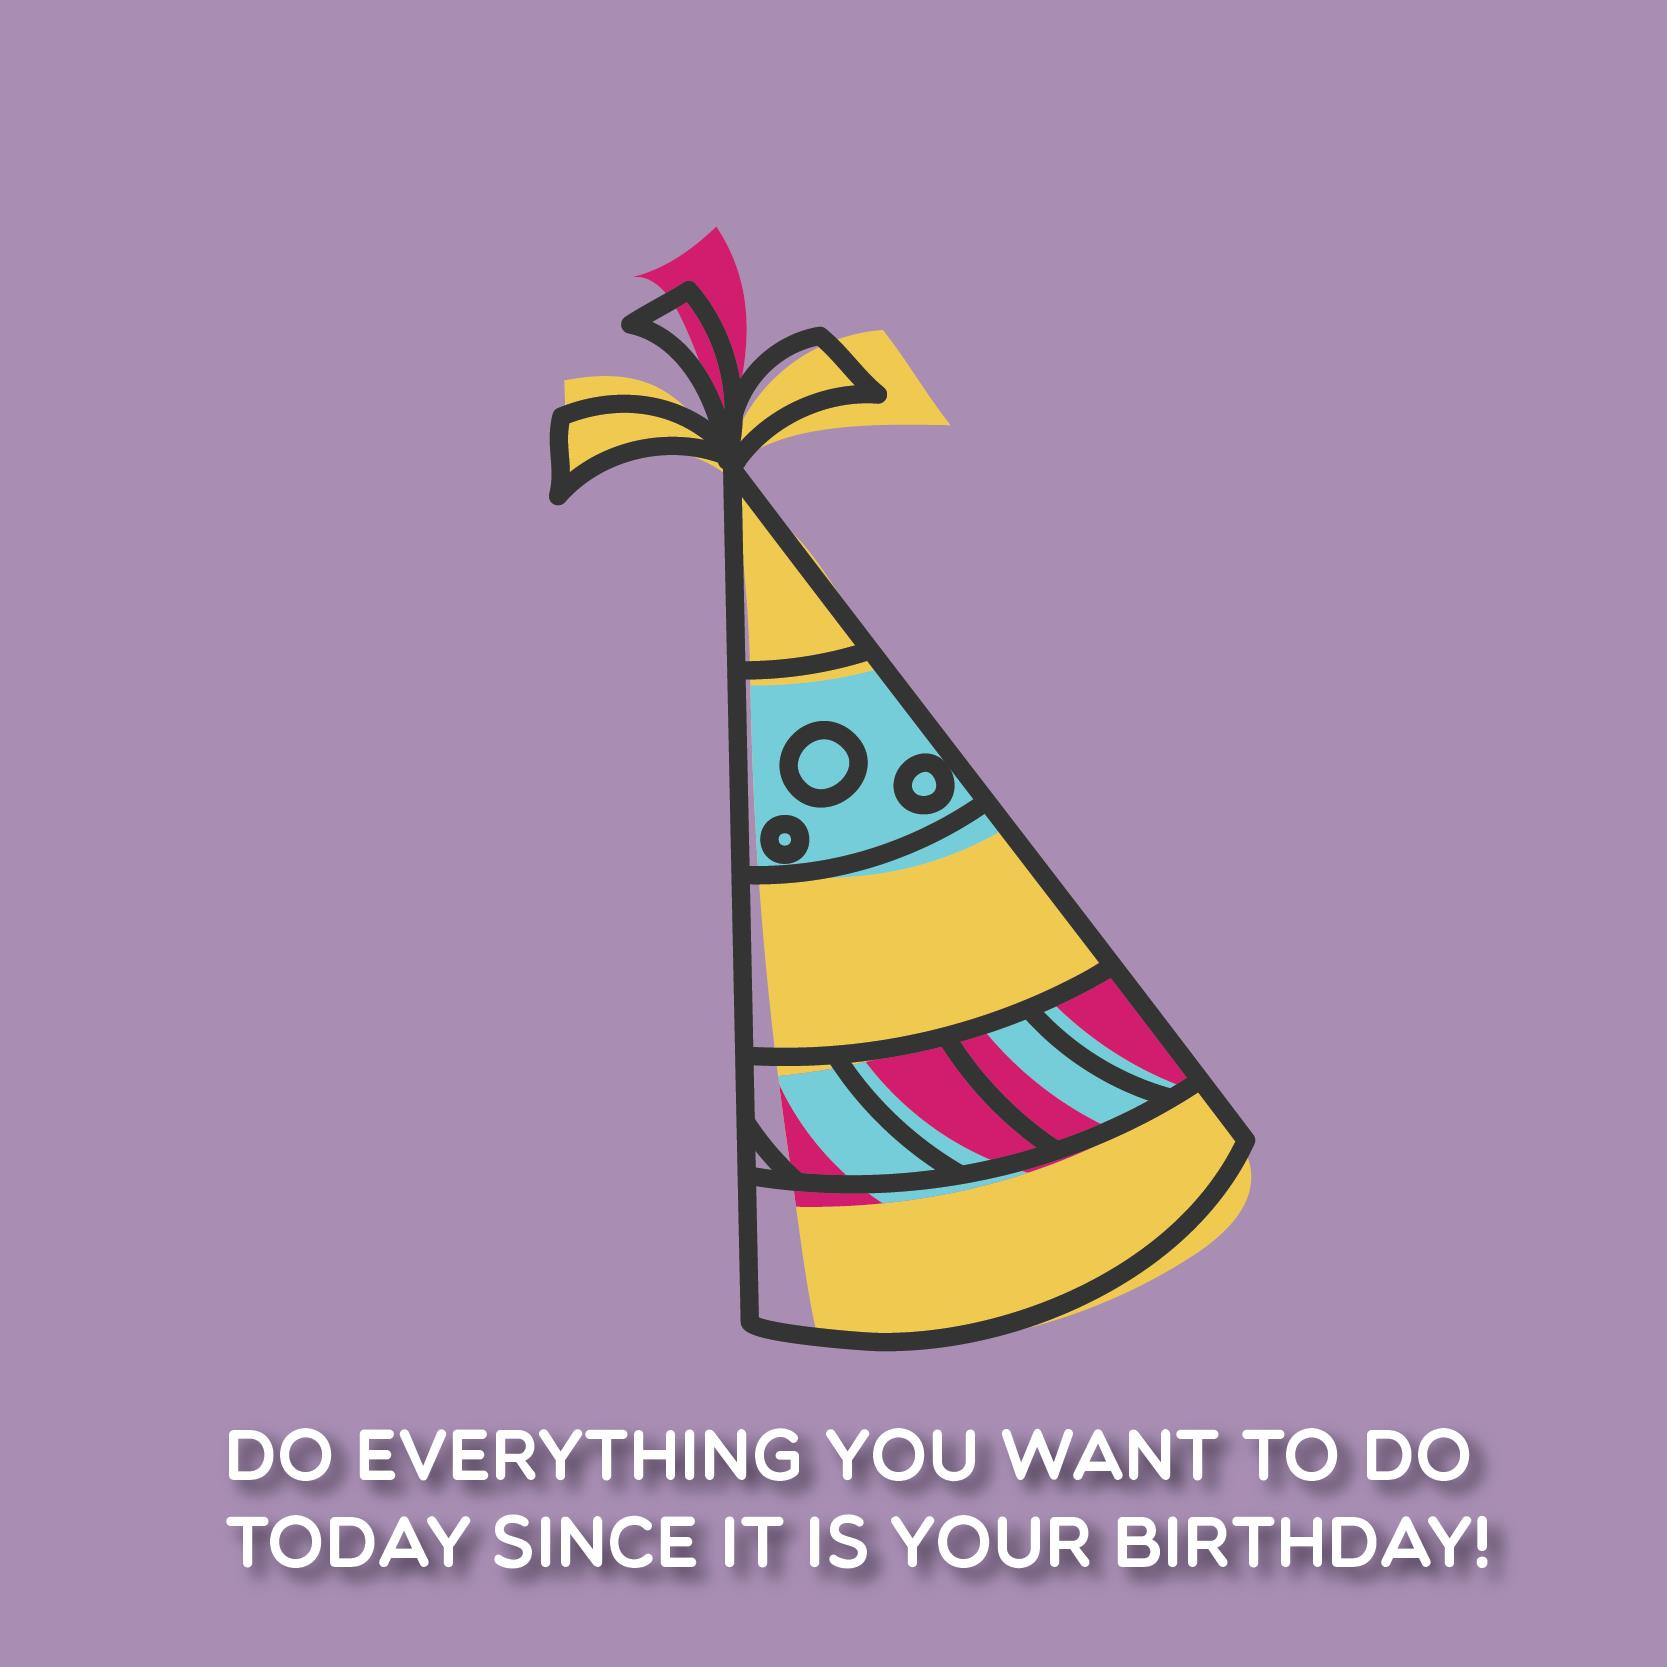 simple-birthday-wishes-03